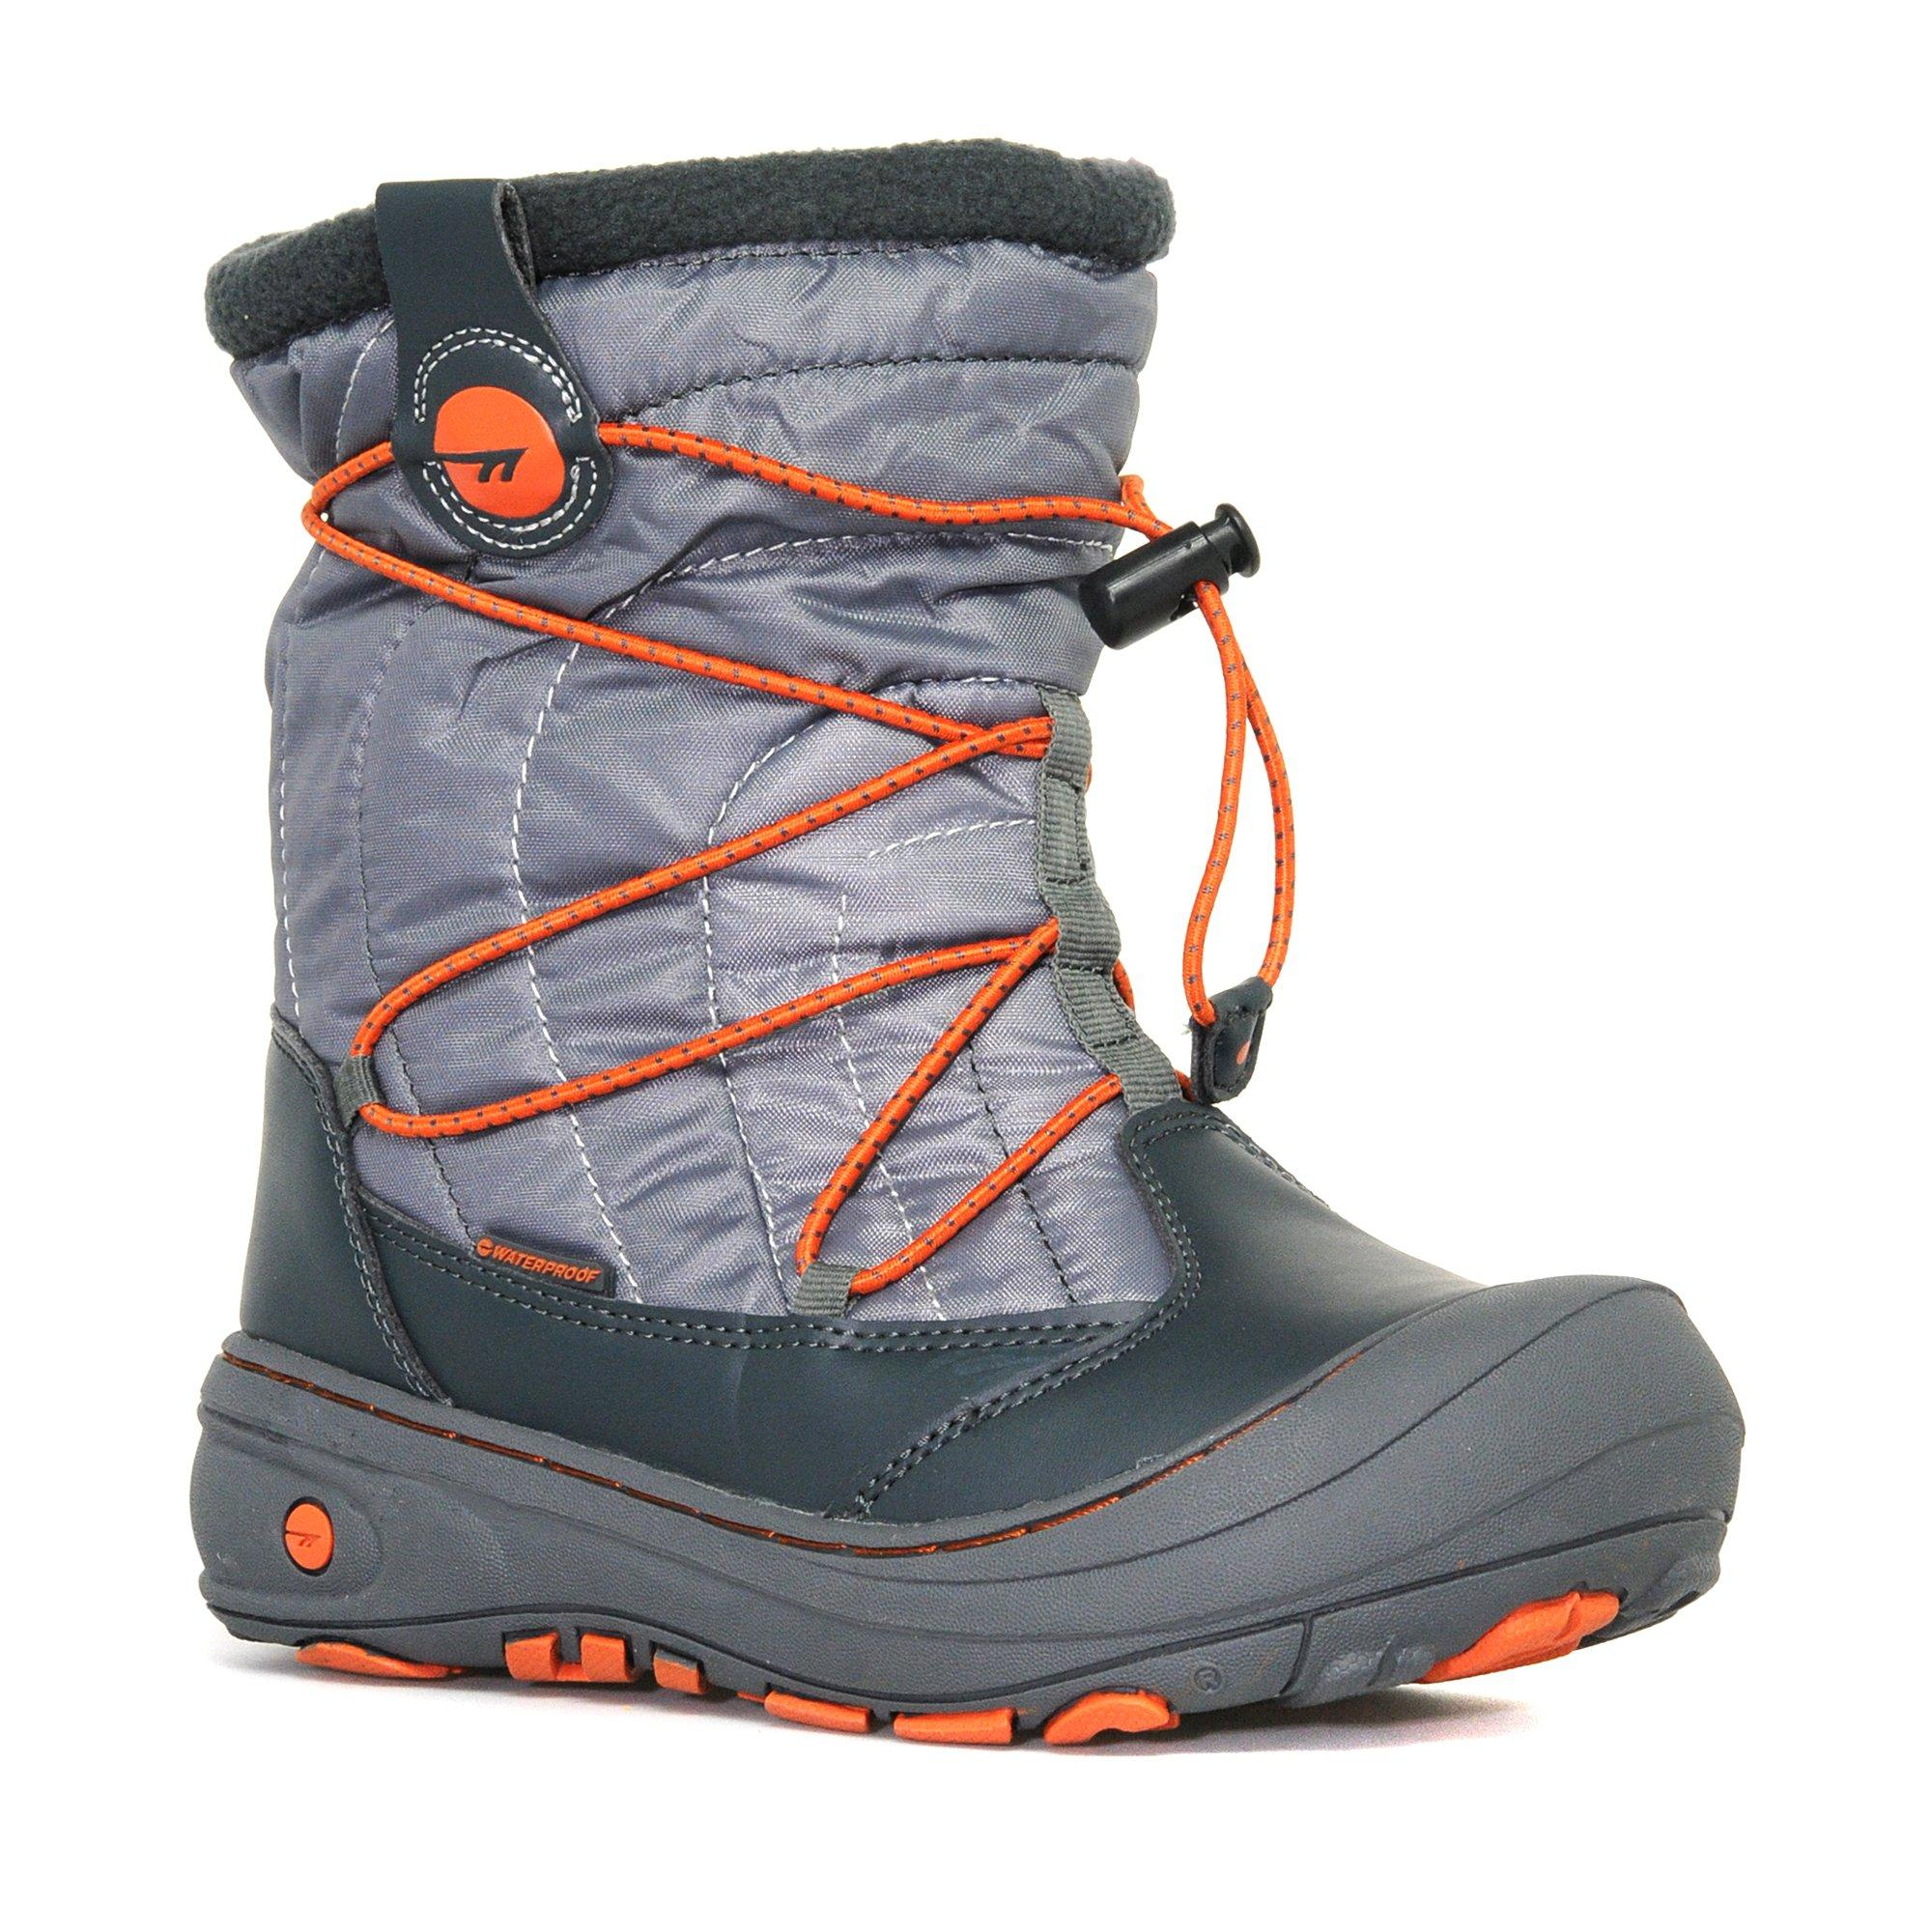 Footwear | Kids' Footwear | Boys' Footwear | Snow Boots